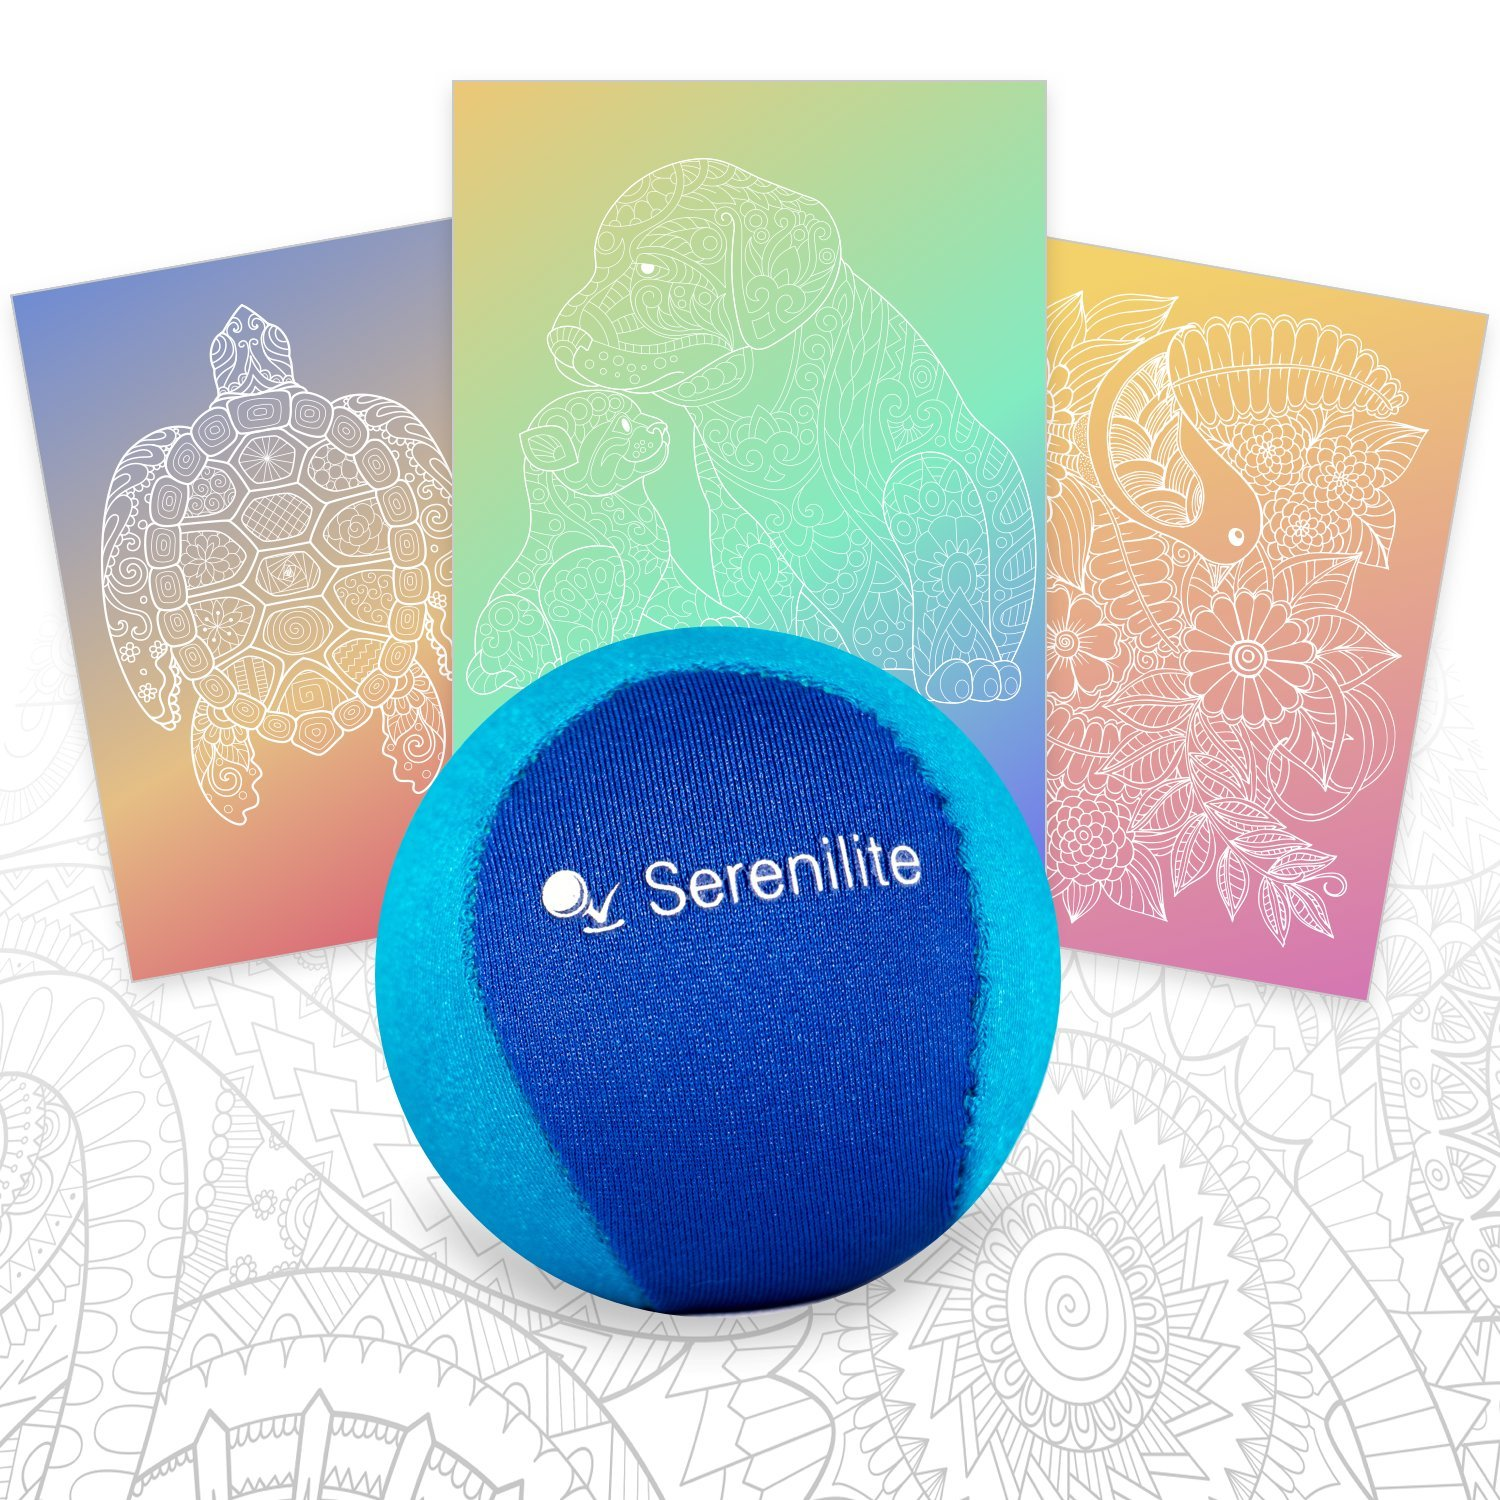 Serenilite Stress Ball & Hand Therapy Gel Squeeze Ball - Great for Hand Exercises and Strengthening - Optimal Stress Relief - Dual Color (Ocean Breeze) by Serenilite (Image #2)